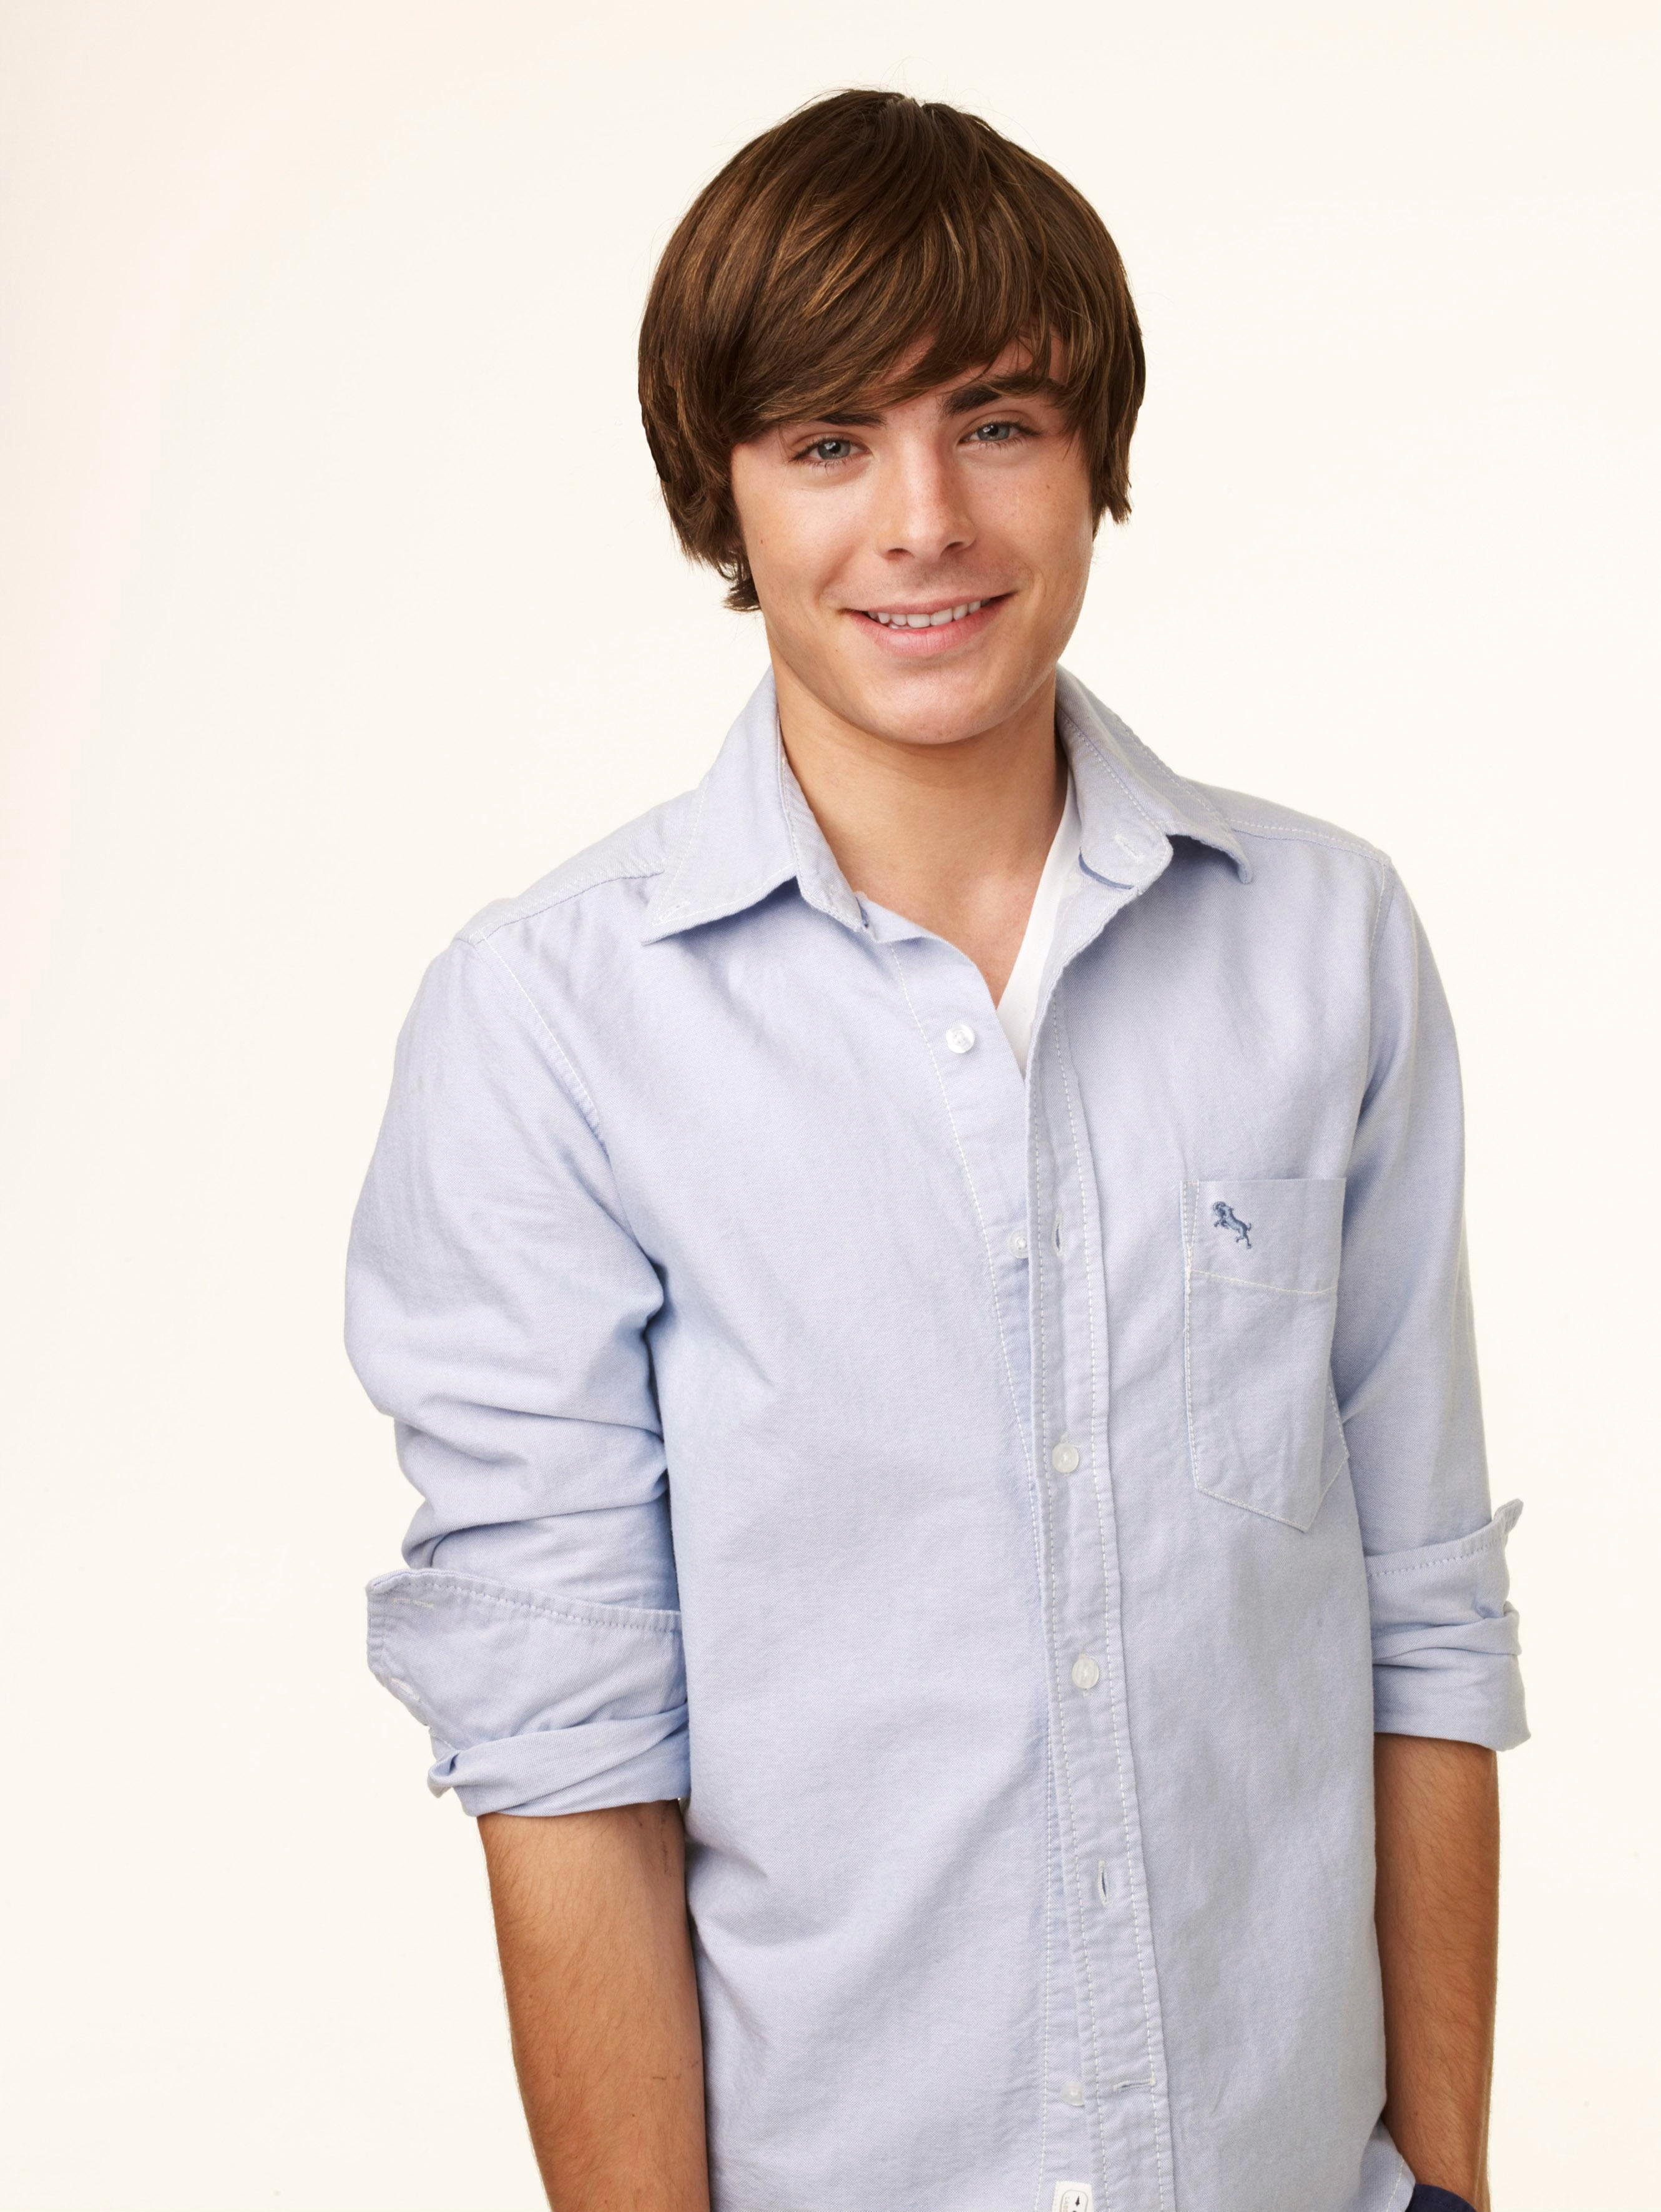 Zac Efron Hairstyle High School Musical 112